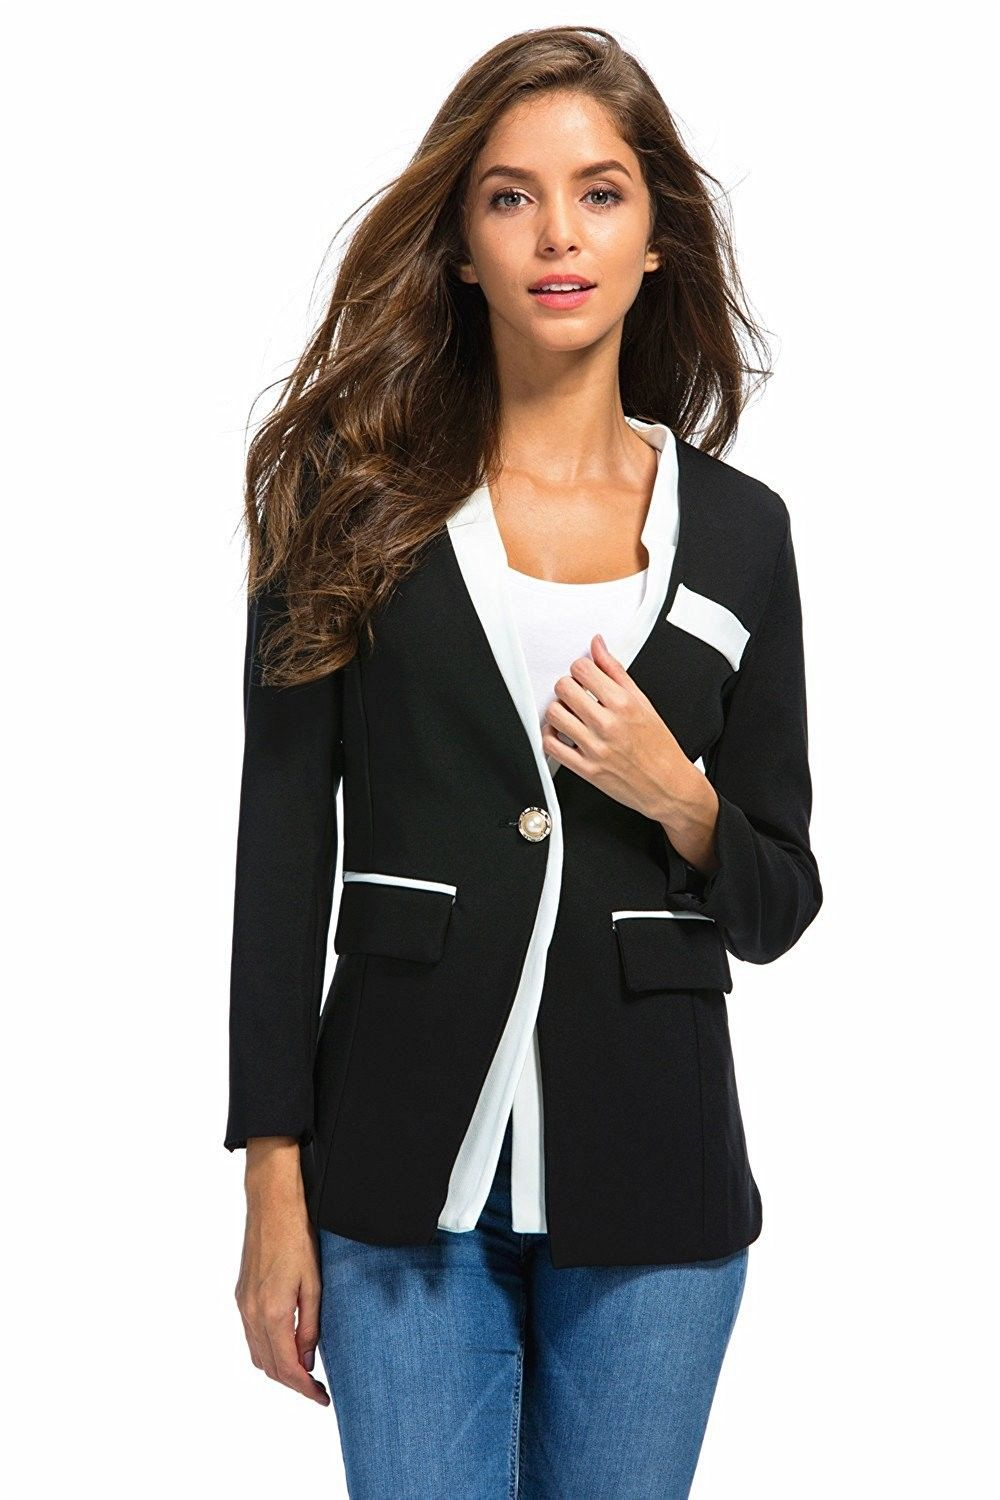 a9983f1a8e9 HaoMing Long Sleeve Solid Color Casual Work Office Blazer Jacket For Women  Girls - 83 Black - CY182XCIU49